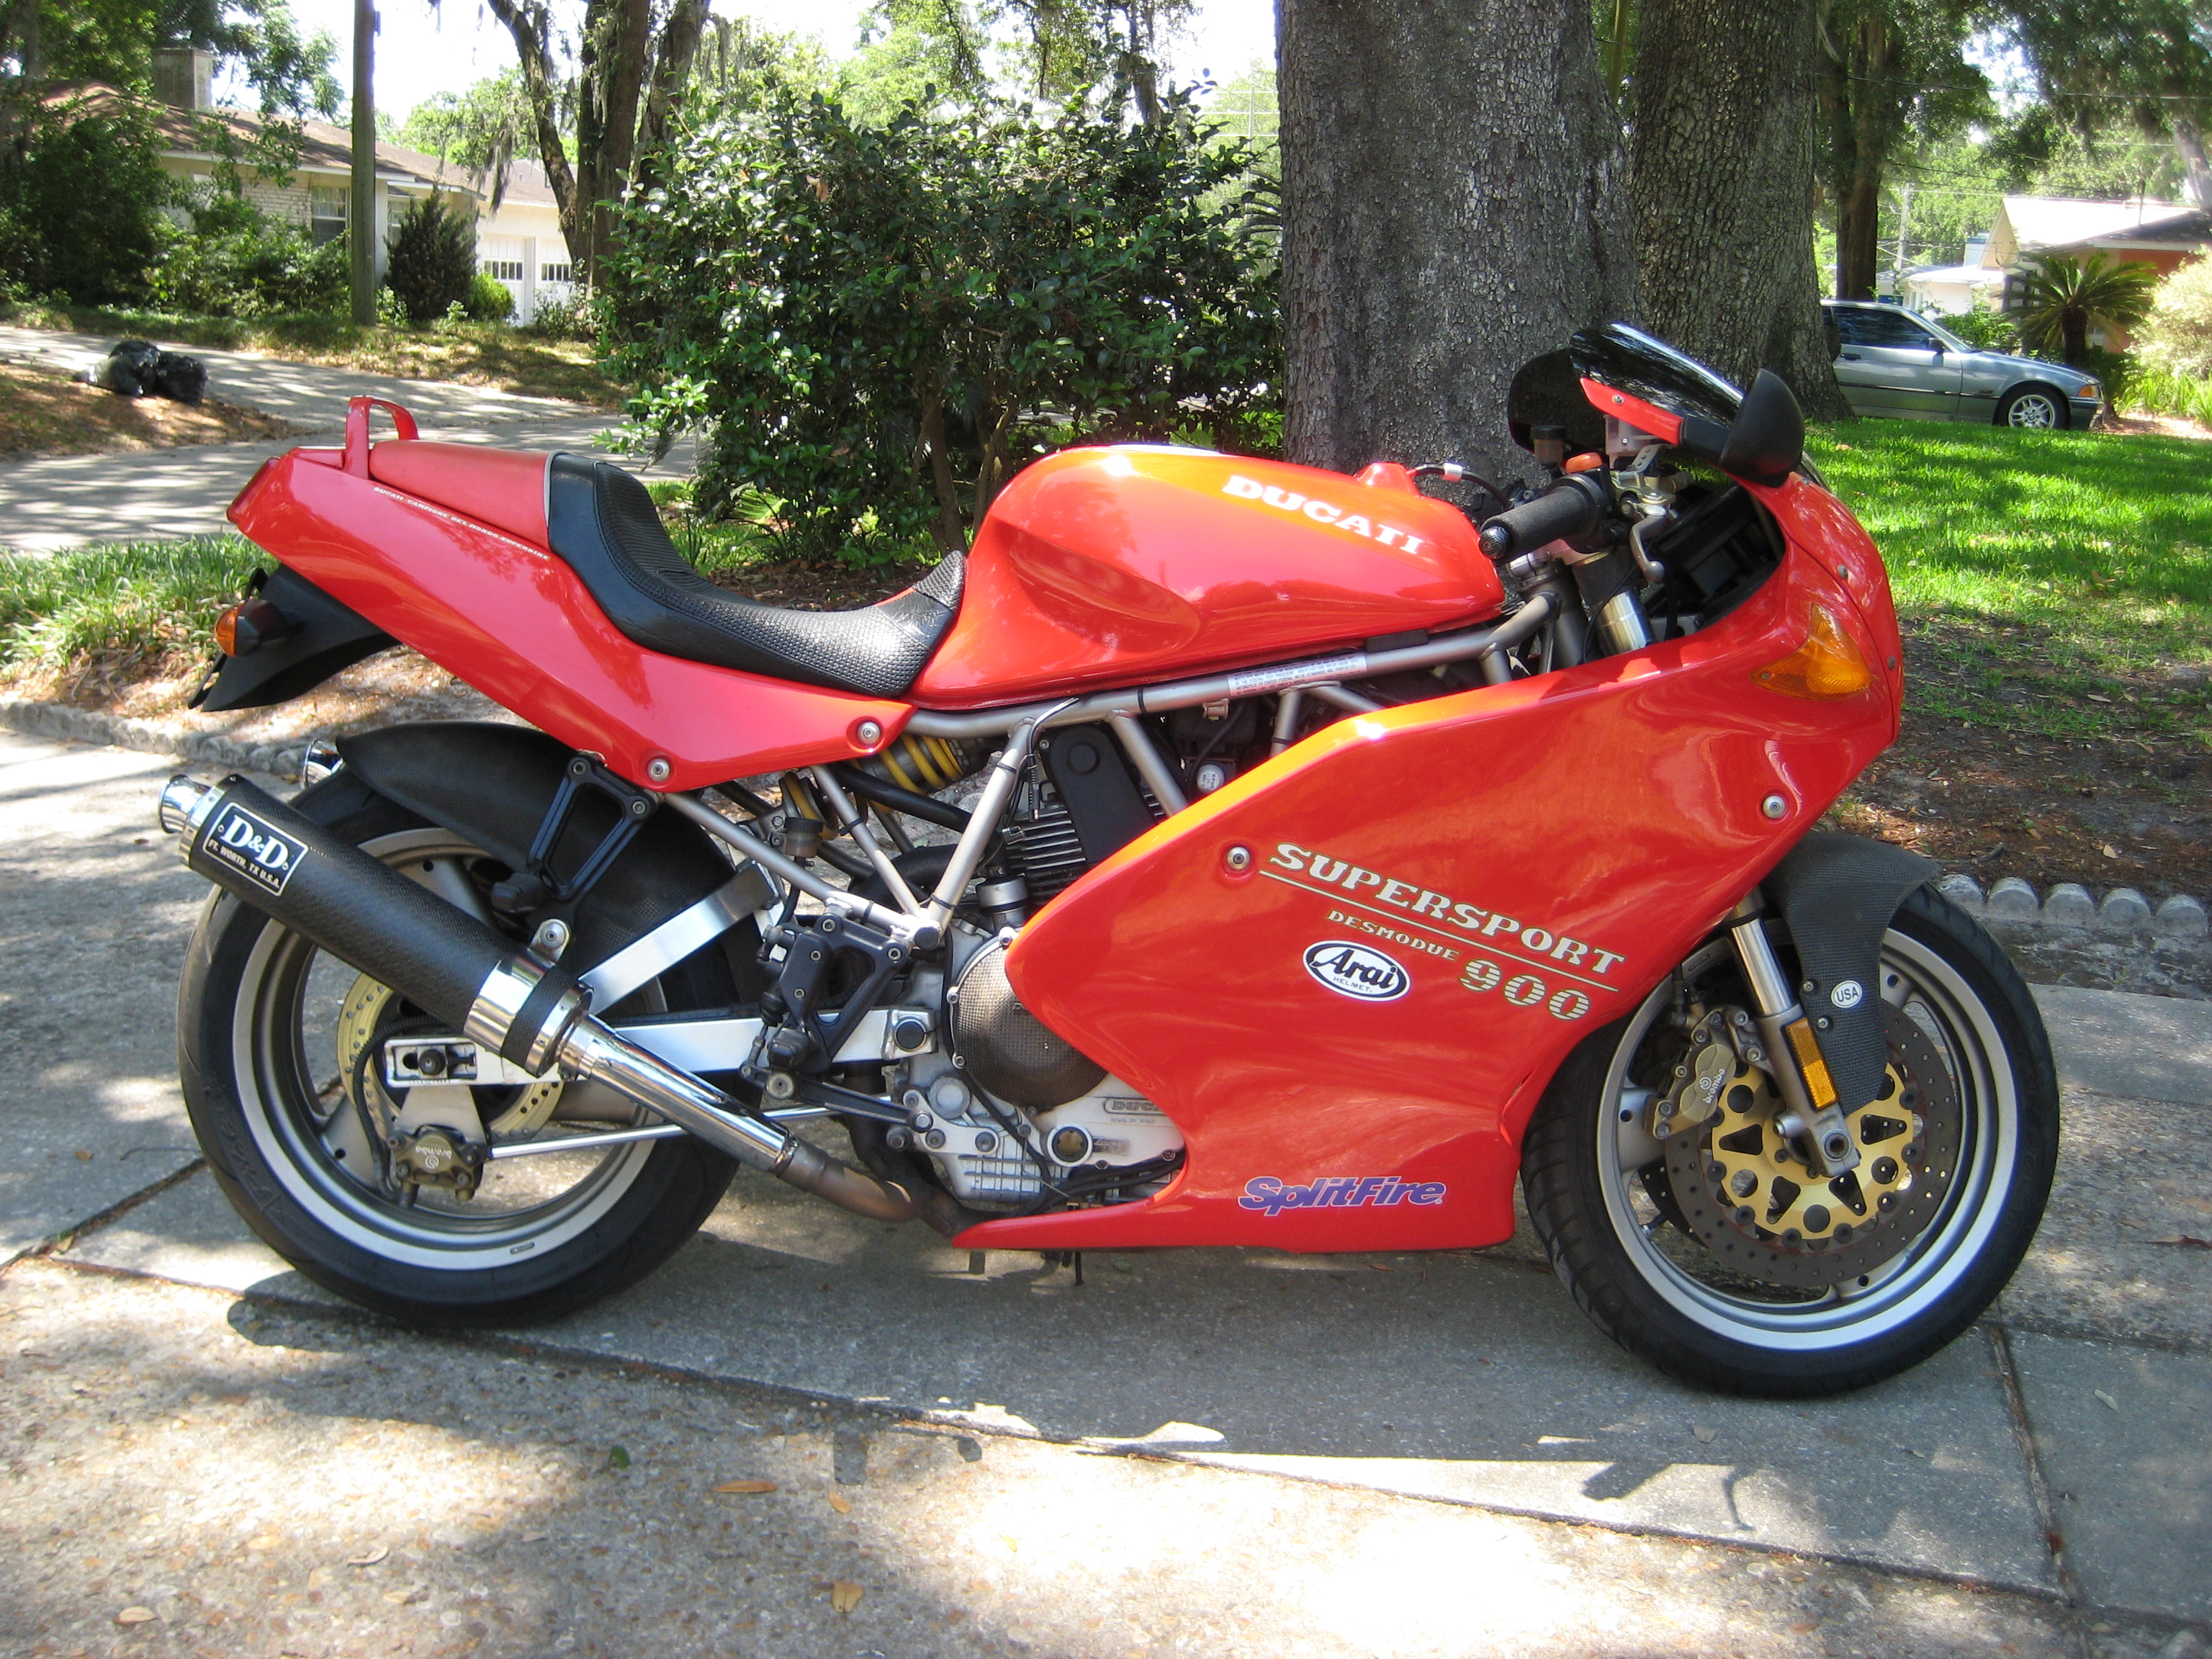 Ducati 900 SS 1994 images #78845